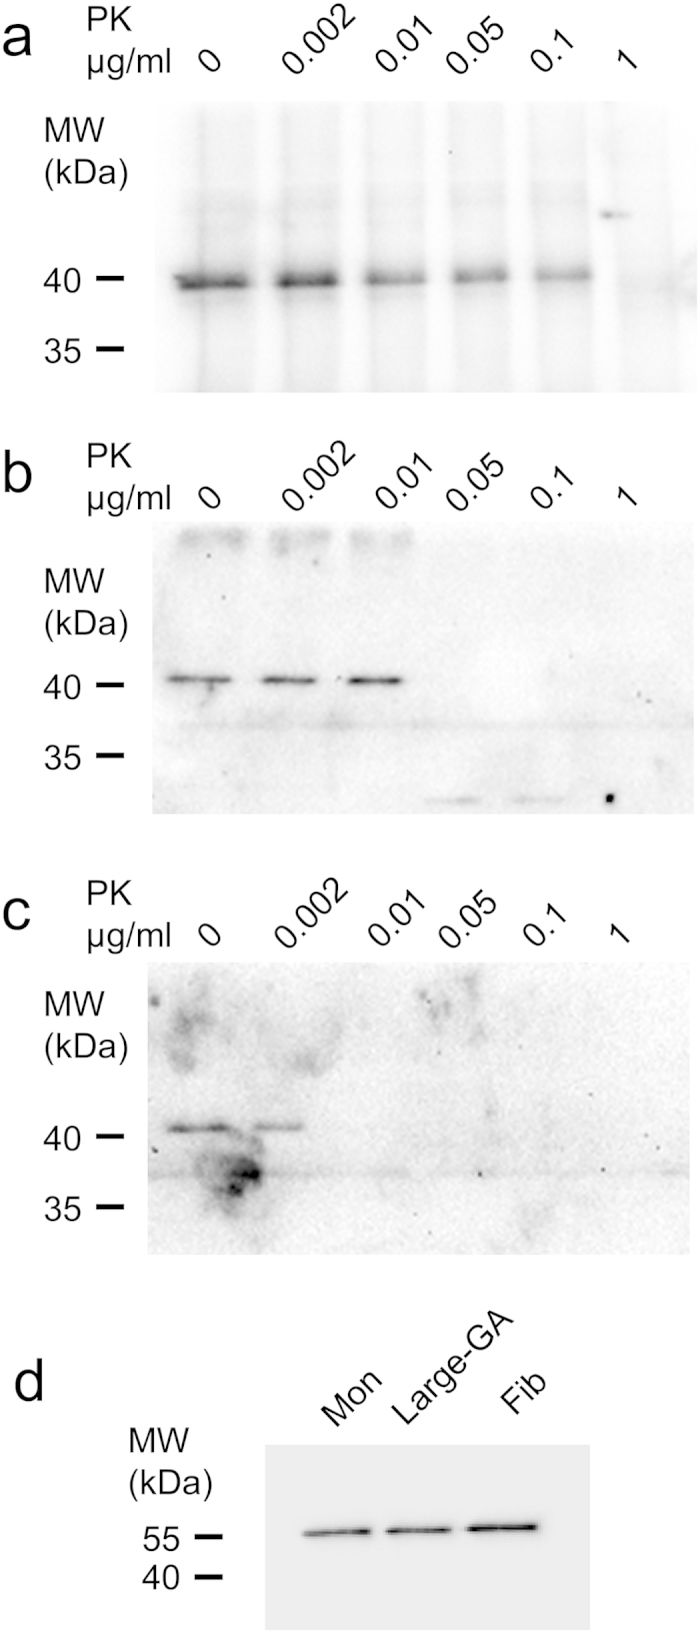 Seeded aggregation of reporter ChFP-α-syn by exogenous α-syn assemblies assessed by increased resistance to proteolysis. Western blot analysis of the ChFP-α-syn resistance to proteinase K in lysates from Neuro2A cells exposed for 24h to 0.3nM α-syn fibrils, equivalent to 2.5μM monomeric α-syn ( a ), 300nM large GA-cross-linked α-syn oligomers, equivalent to 5μM monomeric α-syn ( b ), or 5μM monomeric α-syn ( c ). The lysates (40μl corresponding to ~80000 cells), were incubated in the presence of the indicated concentrations of proteinase K for 20min at 37°C. The proteolytic reactions were stopped by addition of 1mM PMSF and immediate denaturation in Laemmli buffer for 5min at 95°C. The samples were analyzed on 12% Tris-Glycine SDS-PAGE. ChFP–α-syn ( a – c ) was probed with mouse monoclonal anti-α-syn antibody (BD Biosciences Cat #610787). The immunoreactivity of α-tubulin (mouse monoclonal antibody DM1A, Abcam Cat #ab7291) in the initial lysate was used as a loading control ( d ). ChFP-α-syn assemblies seeded by α-syn fibrils resisted 0.1μg/ml proteinase K ( a ). ChFP-α-syn from cells exposed to monomeric α-syn was fully degraded by 0.01μg/ml proteinase K ( c ). ChFP-α-syn originating from cells exposed to large GA-cross-linked oligomers resisted 0.01μg/ml and was fully degraded by 0.05μg/ml proteinase K ( b ).